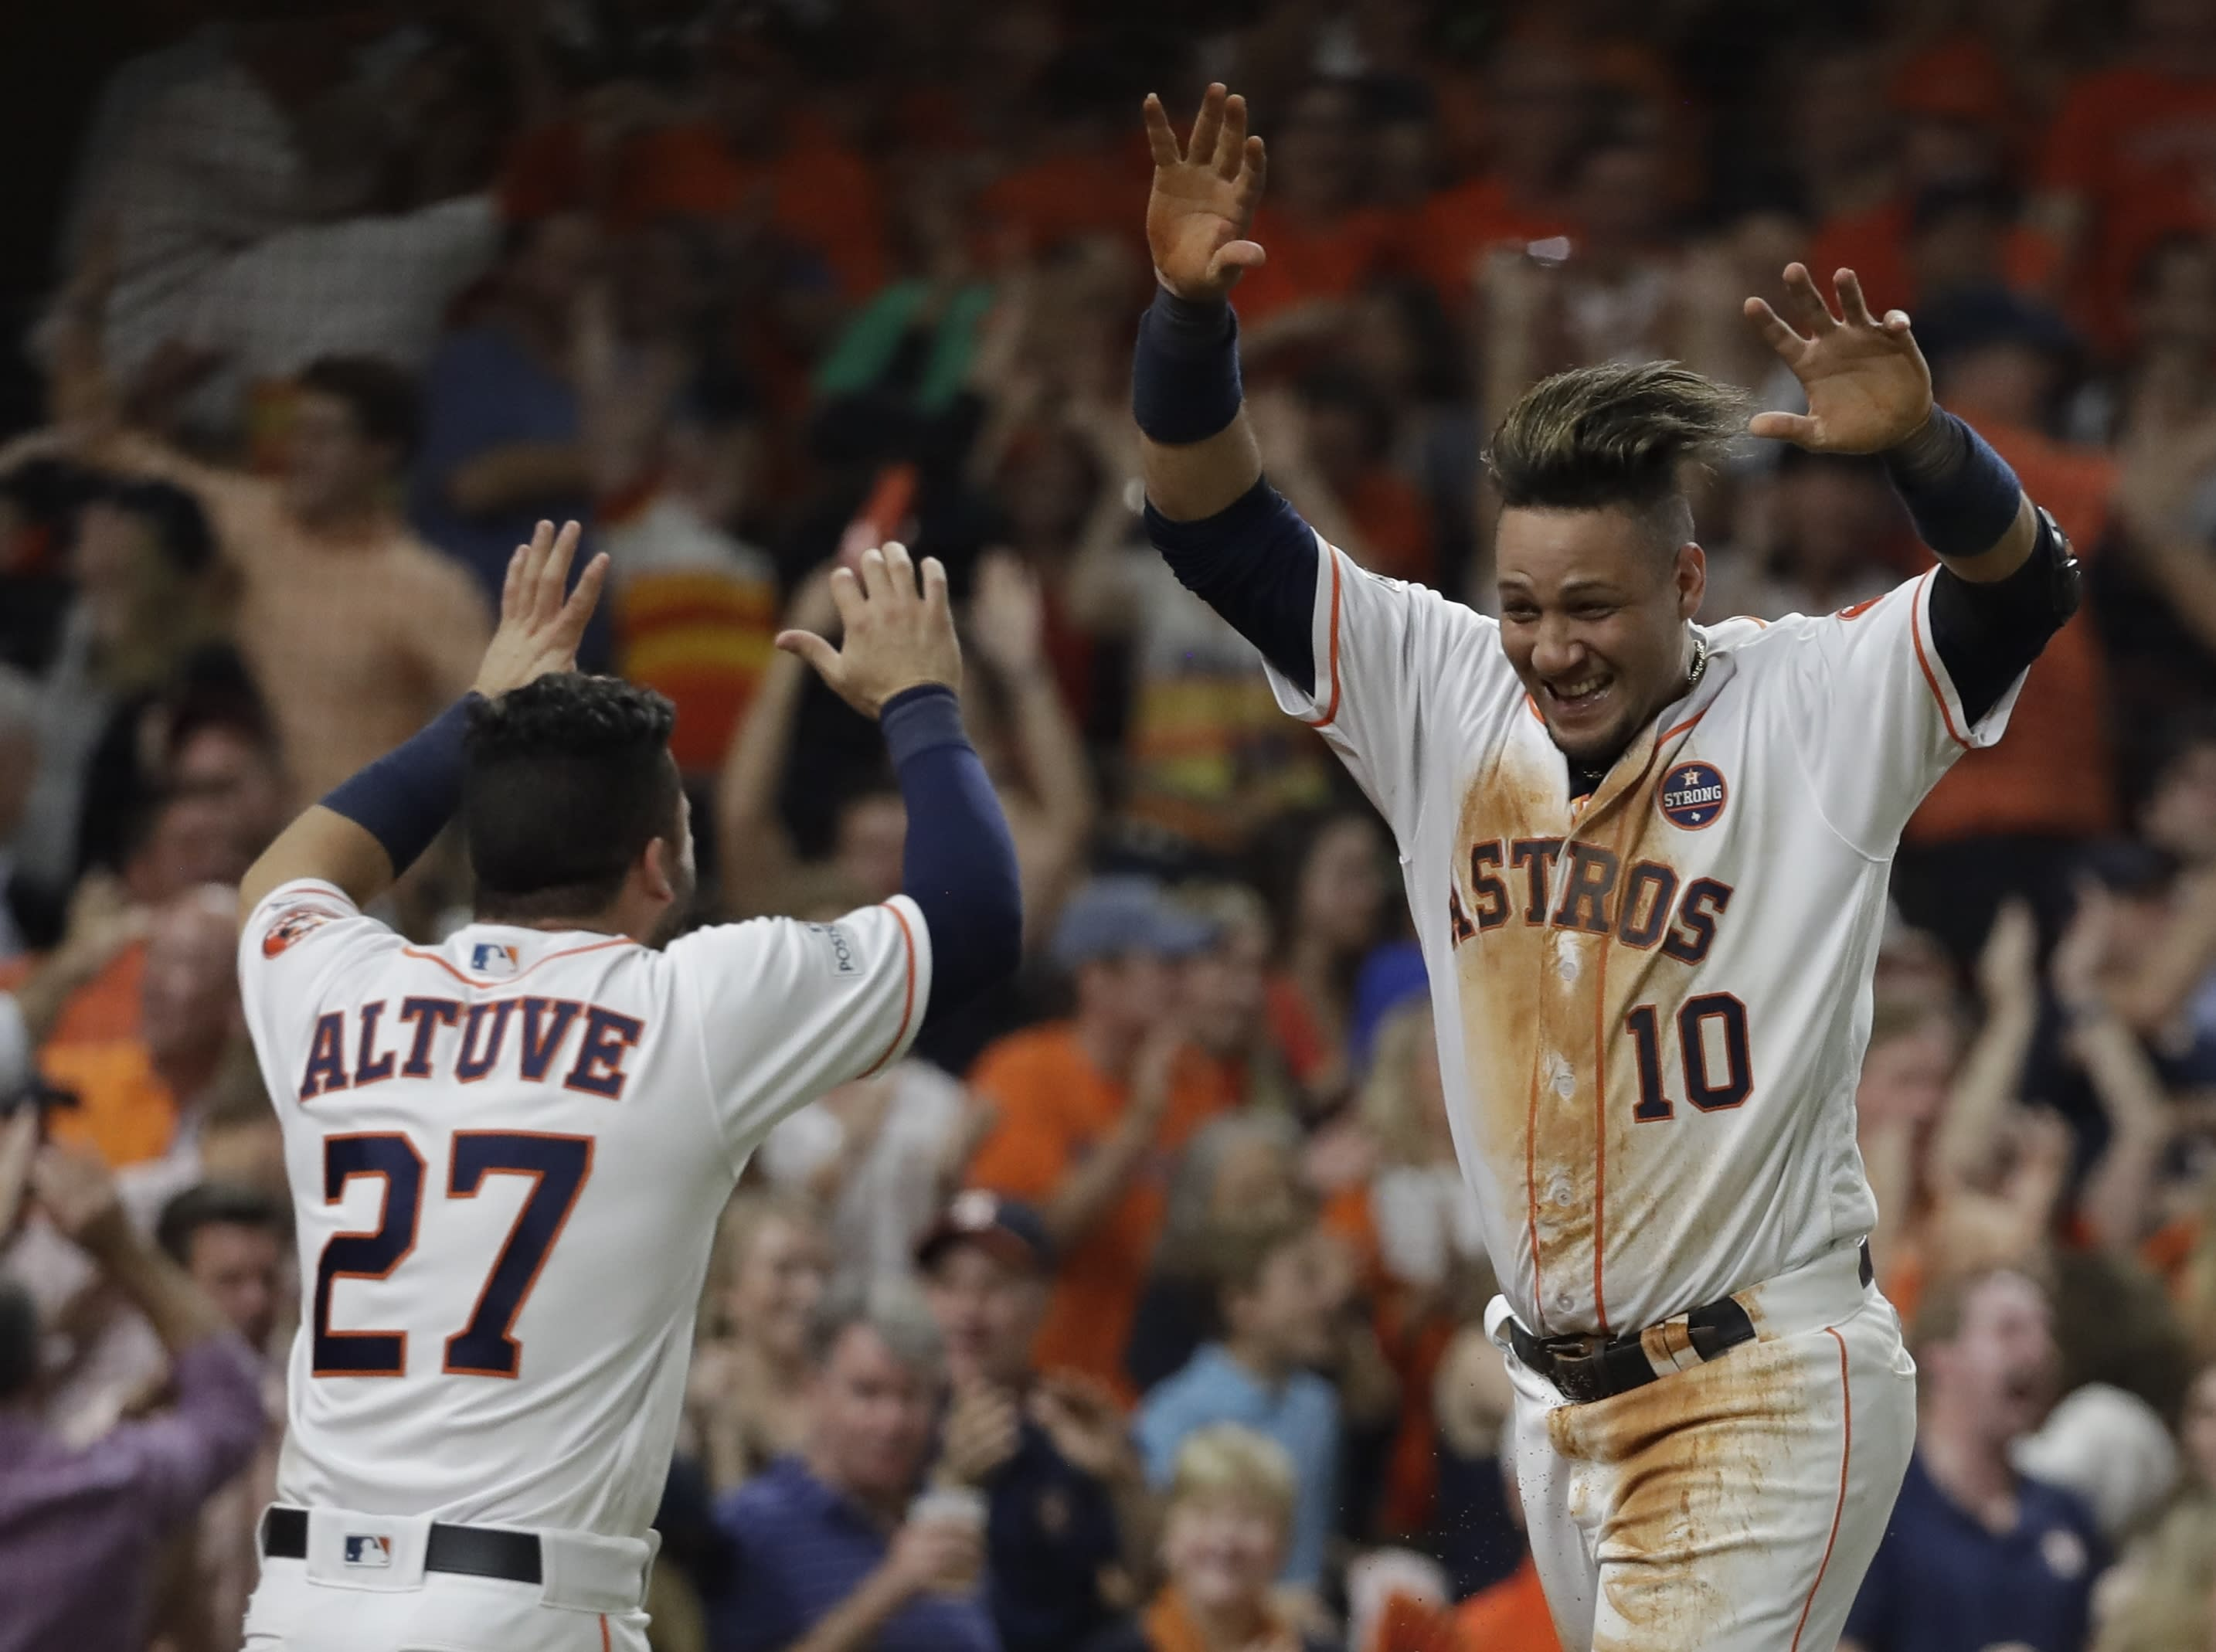 ALCS Game 7: Astros headed to World Series after defeating Yankees